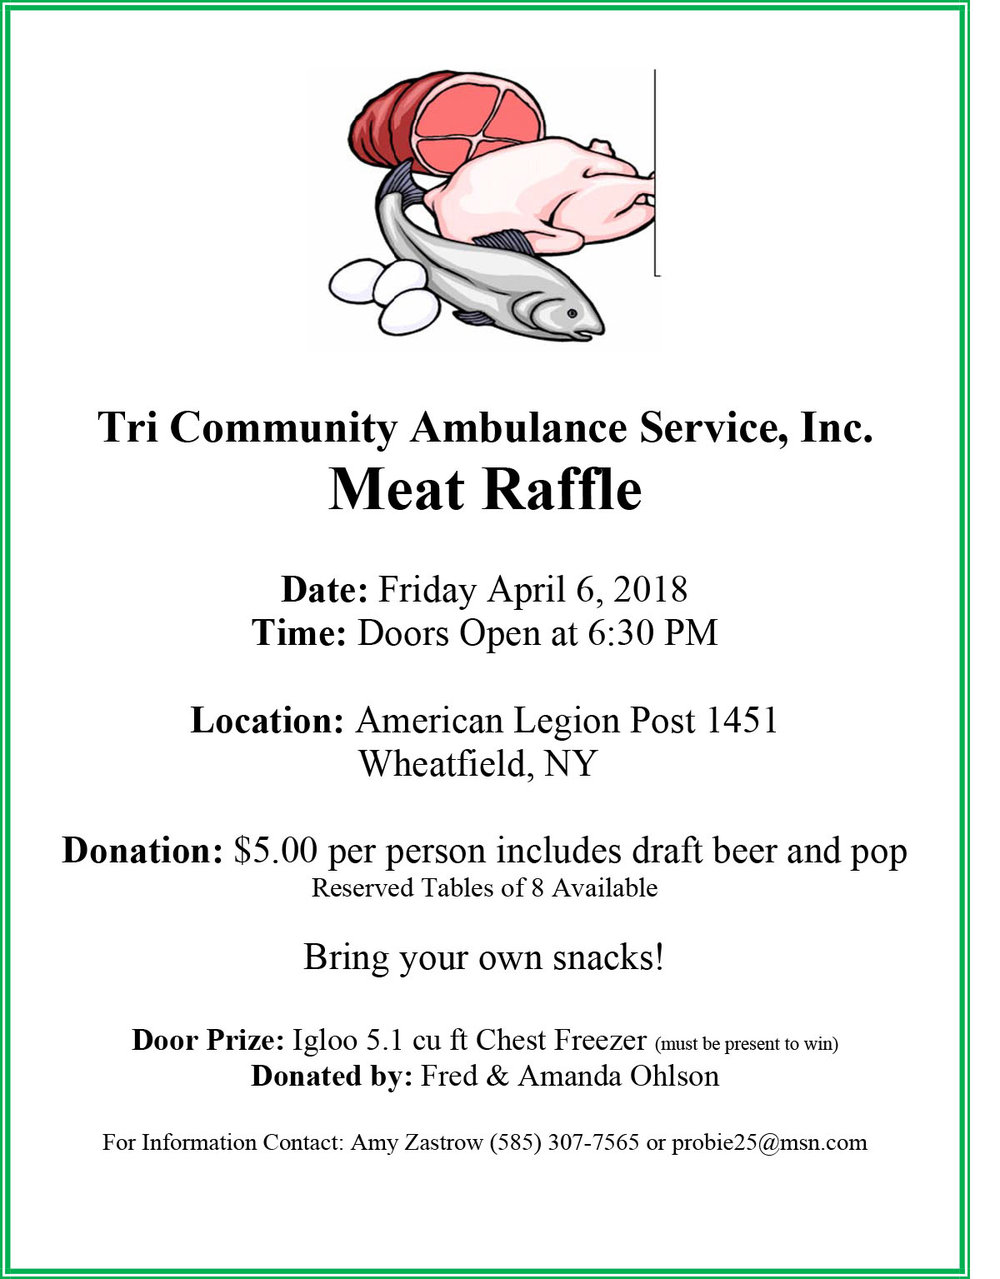 Meat Raffle Flyer 4.6.18.jpg